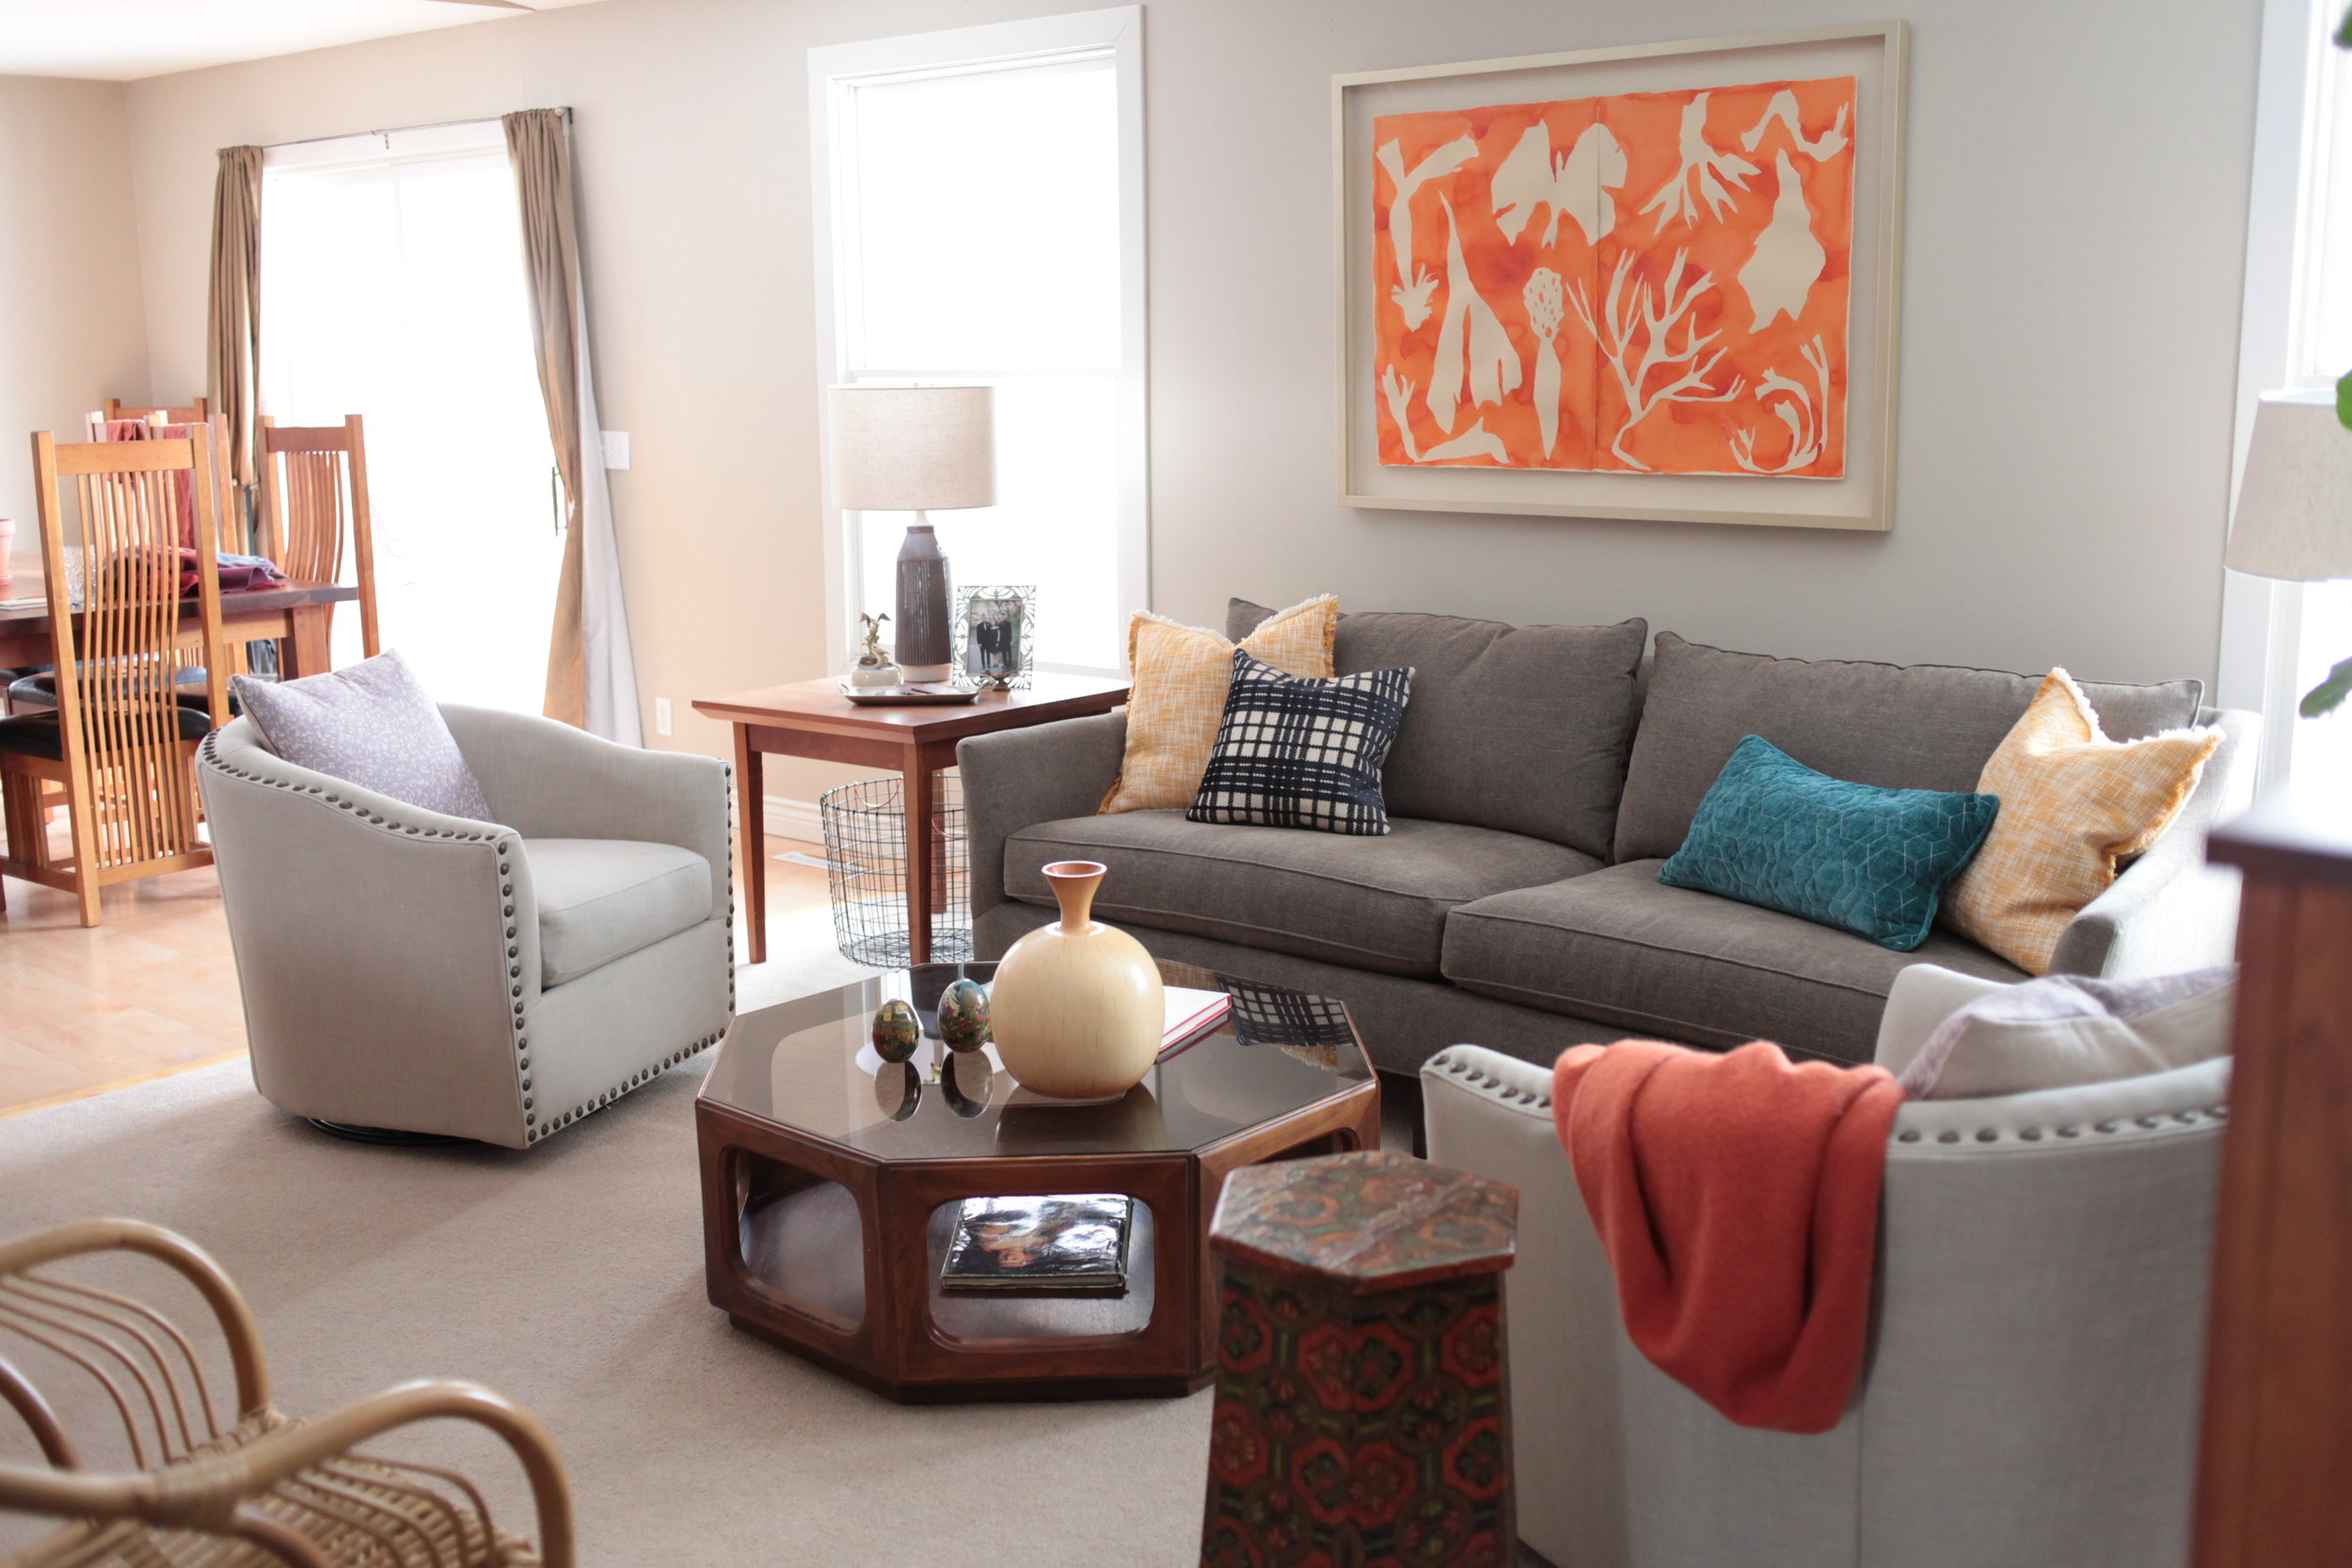 An inviting neutral room with orange art, swivel chairs, and octagon wooden coffee table.JPG